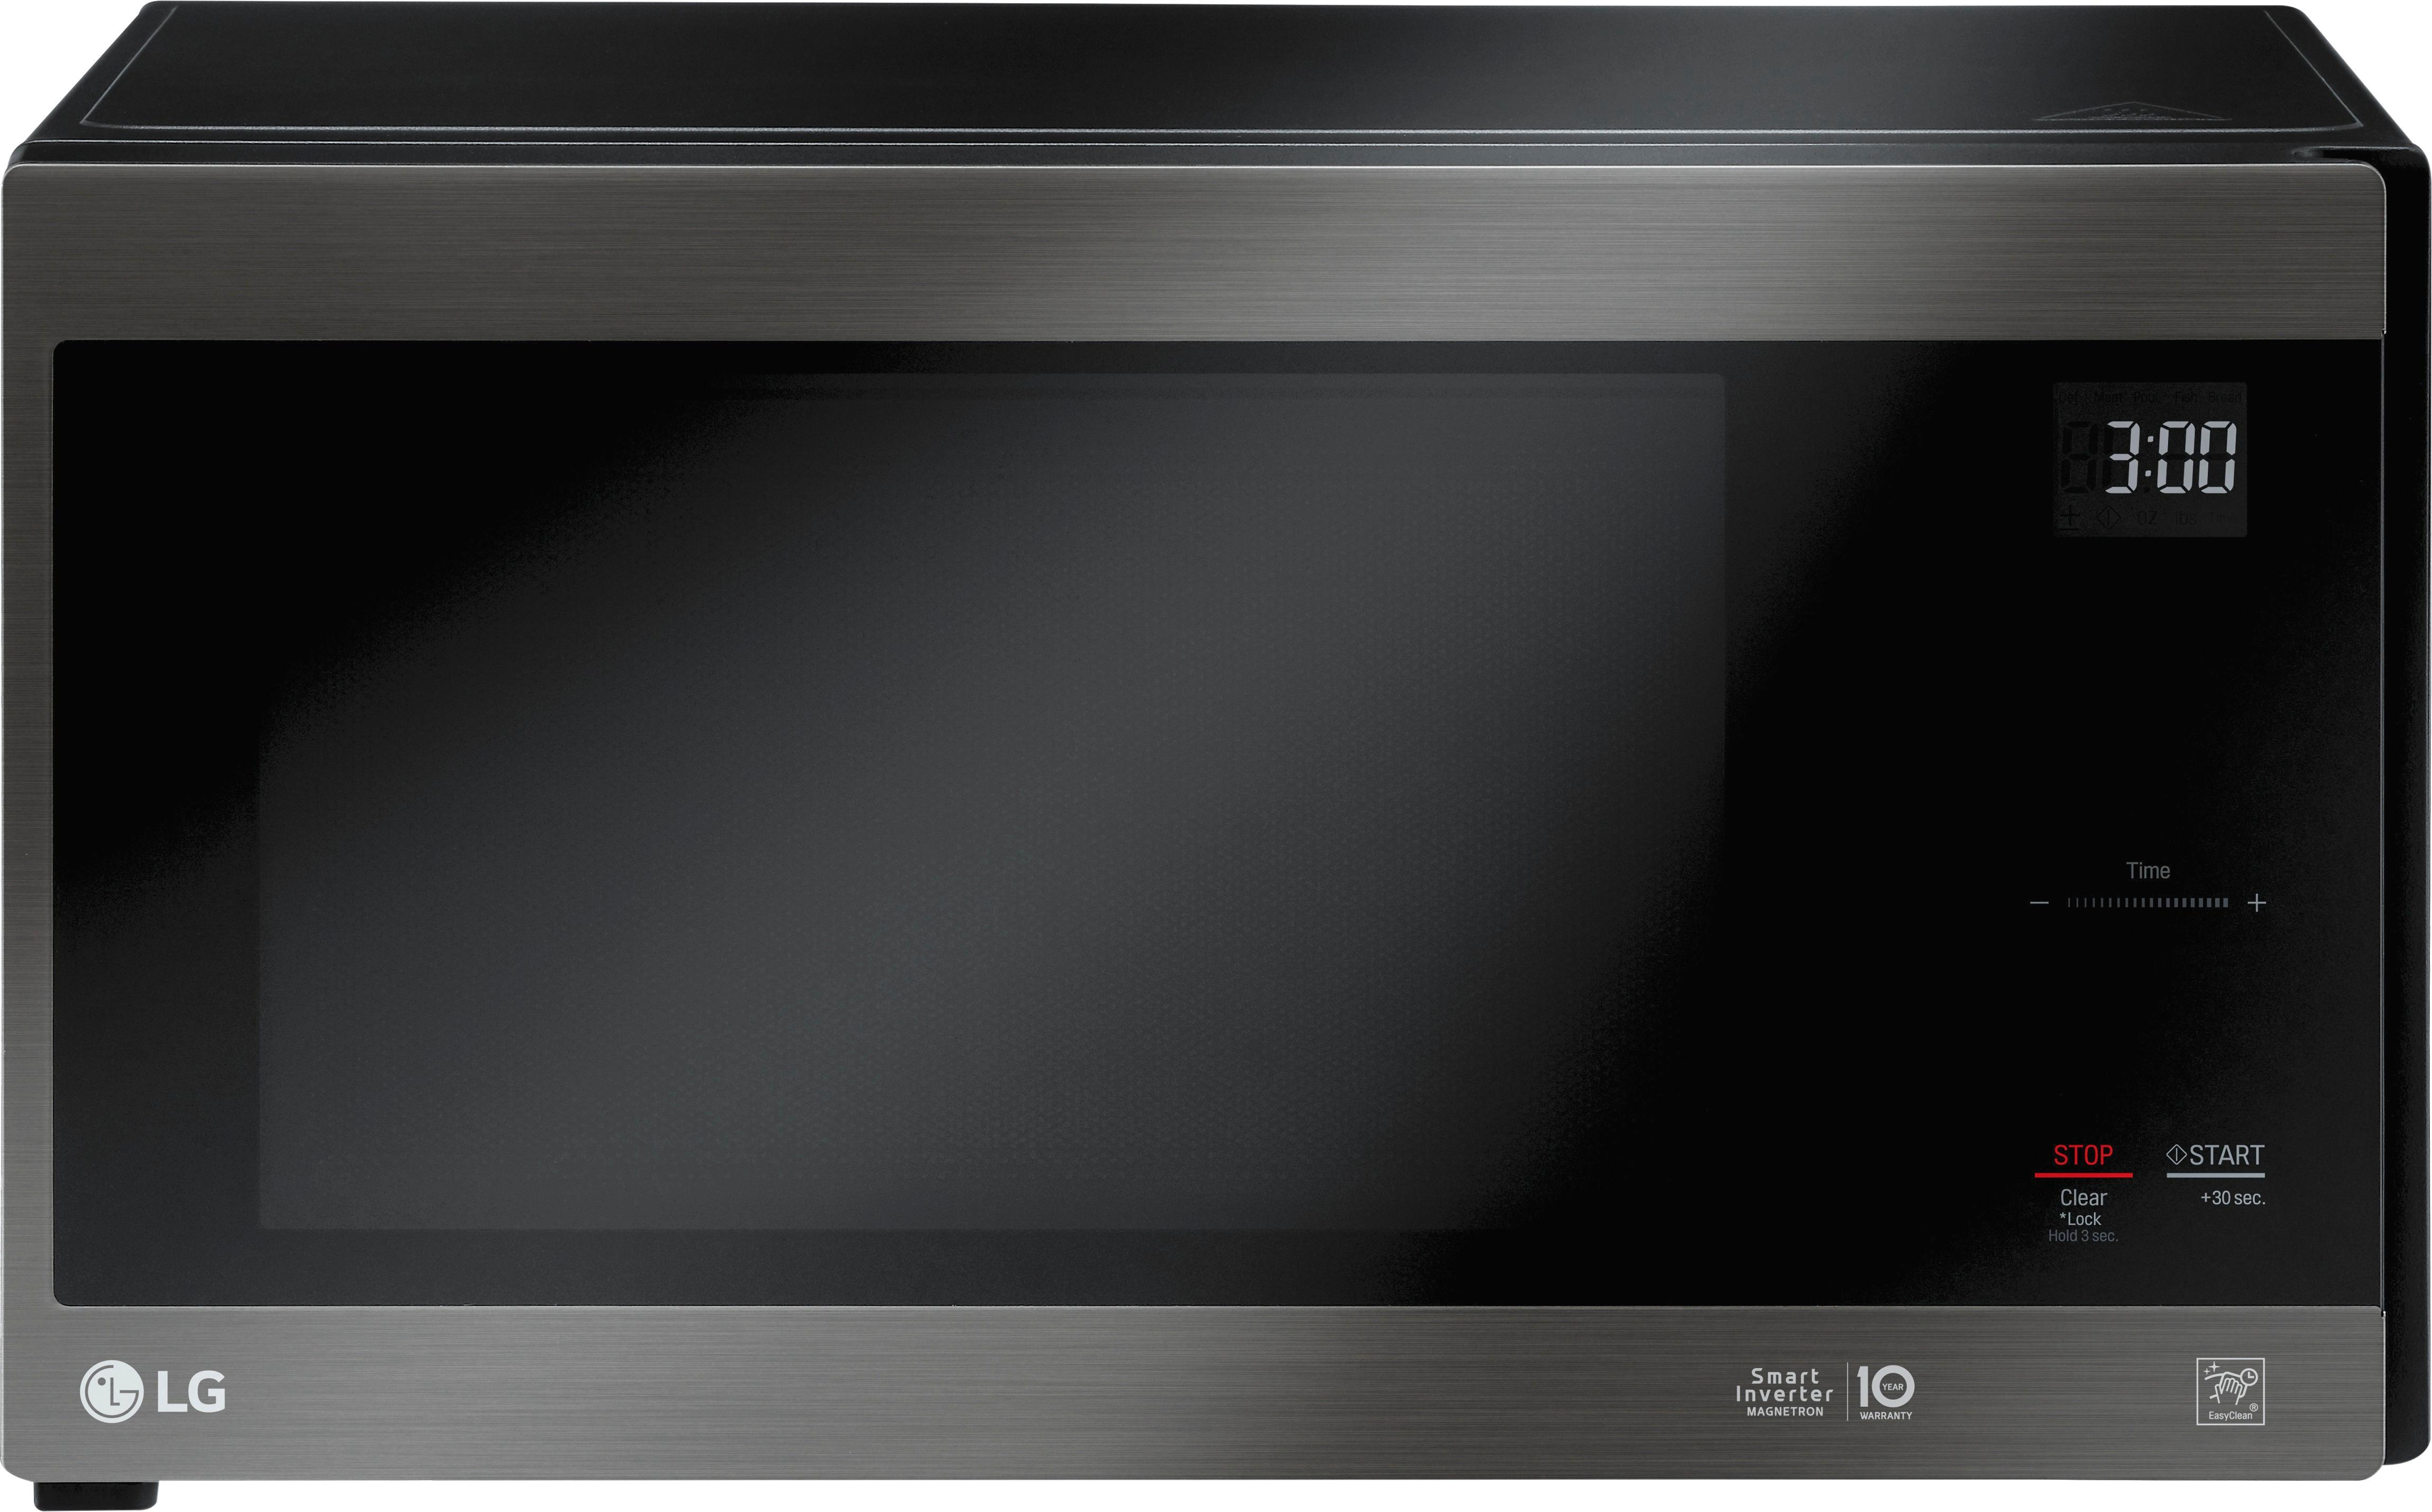 lg neochef 1 5 cu ft mid size microwave black stainless steel